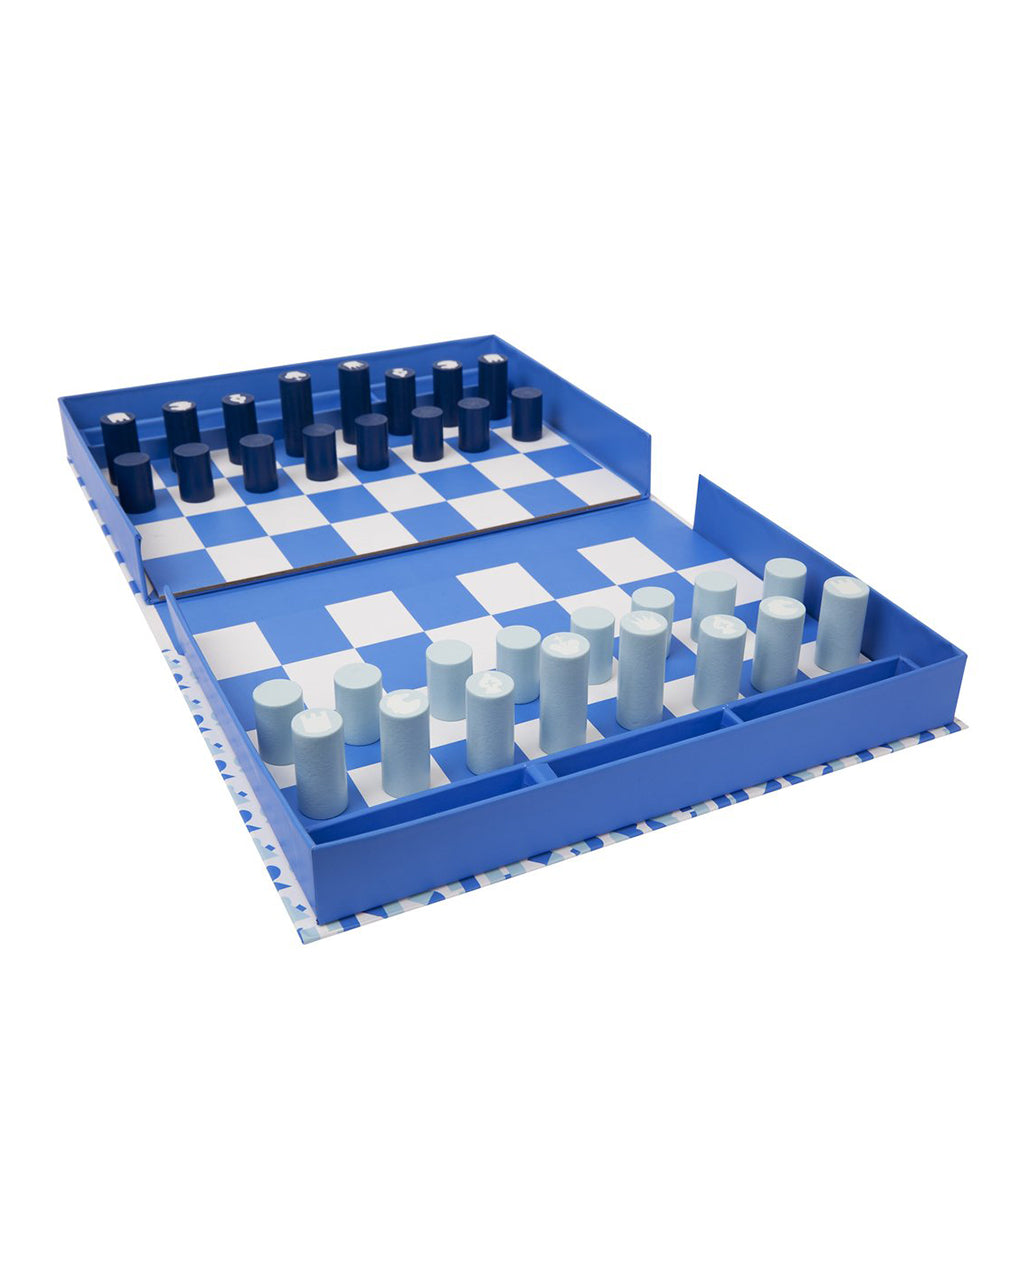 white and blue chess and checkers board game